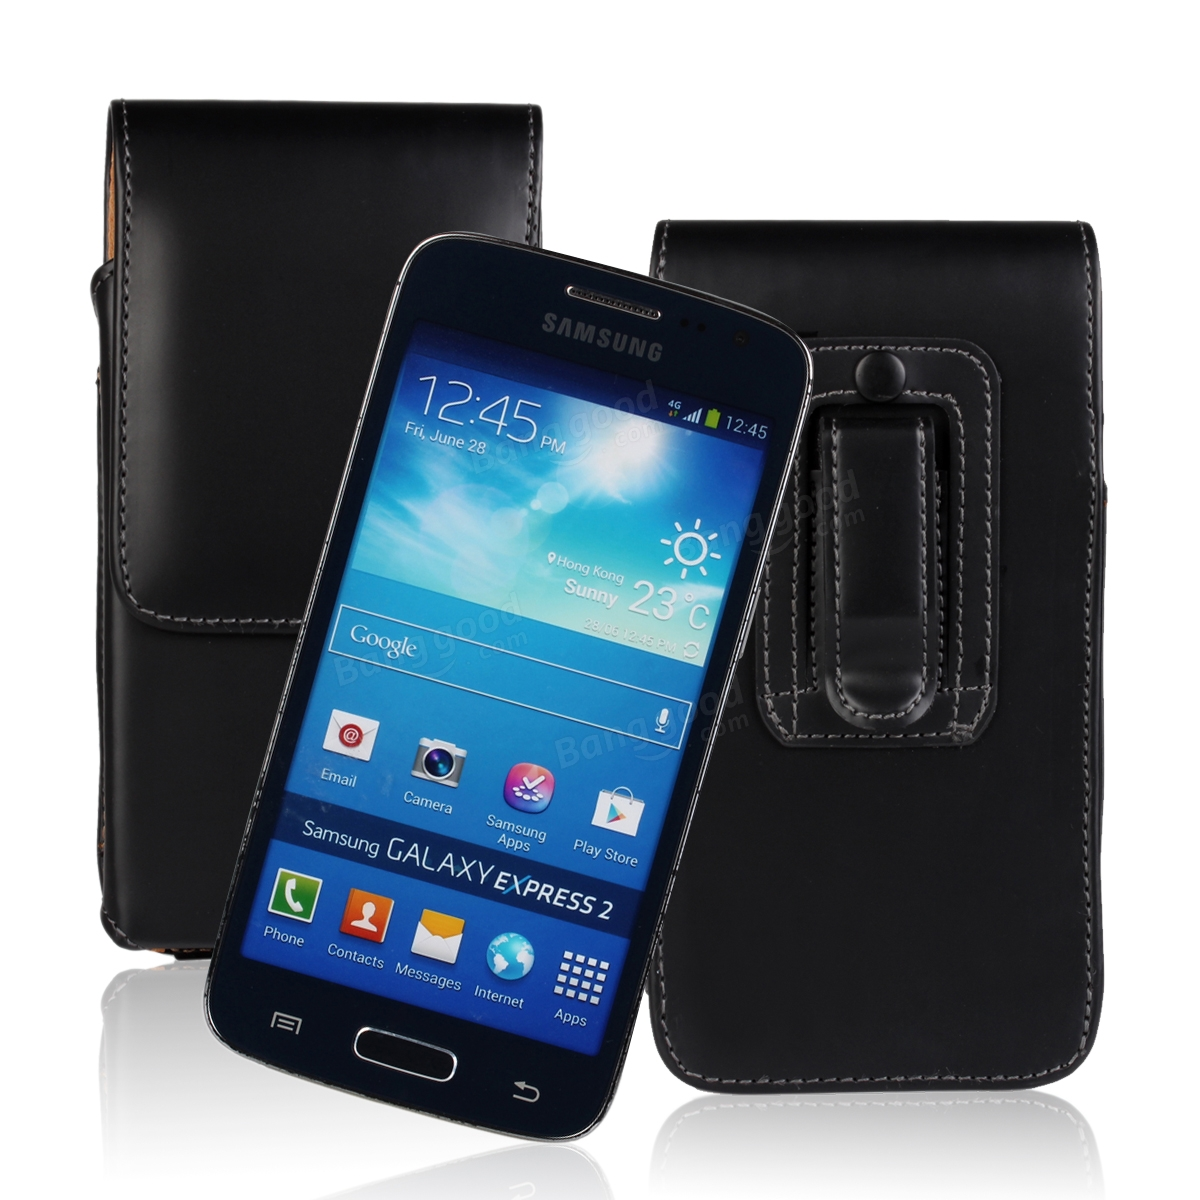 Waist Hanged Open Up And Down Leather Case For Samsung Express 2 G3815